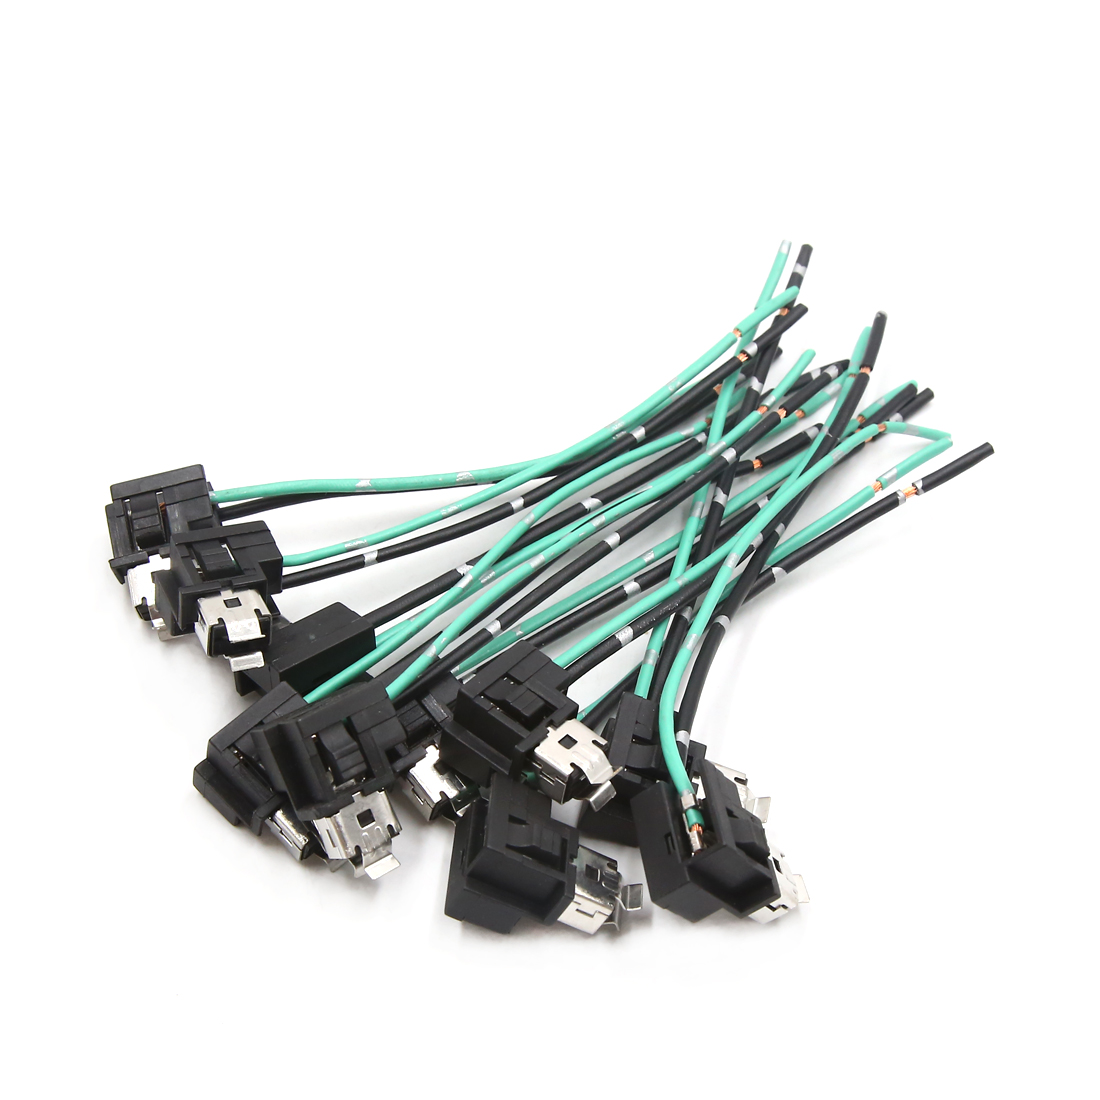 small resolution of 10pcs h1 halogen fog light lamp extension wire harness socket connector for car